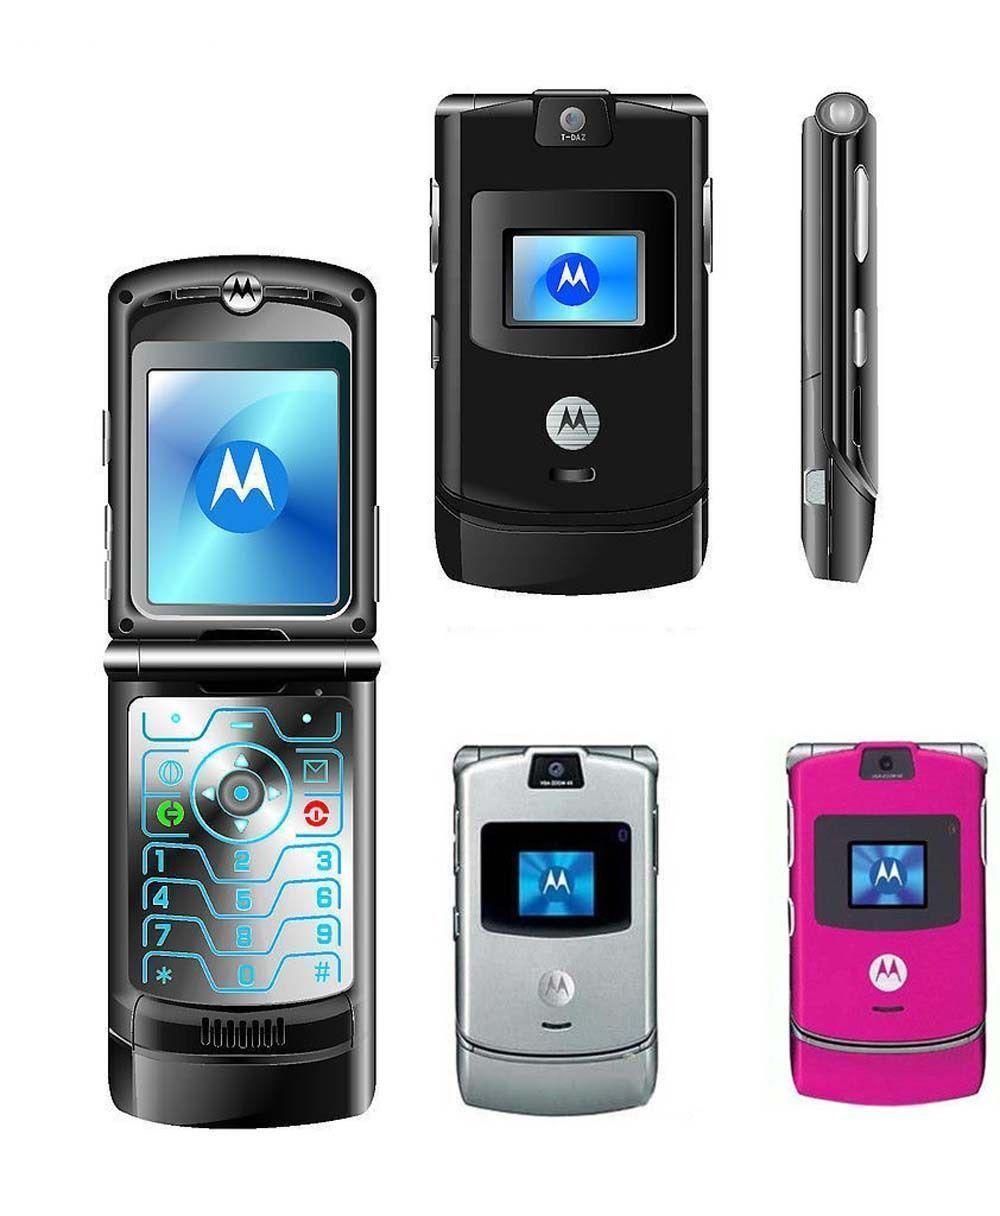 Motorola Razr Price release date specs and all the latest rumours